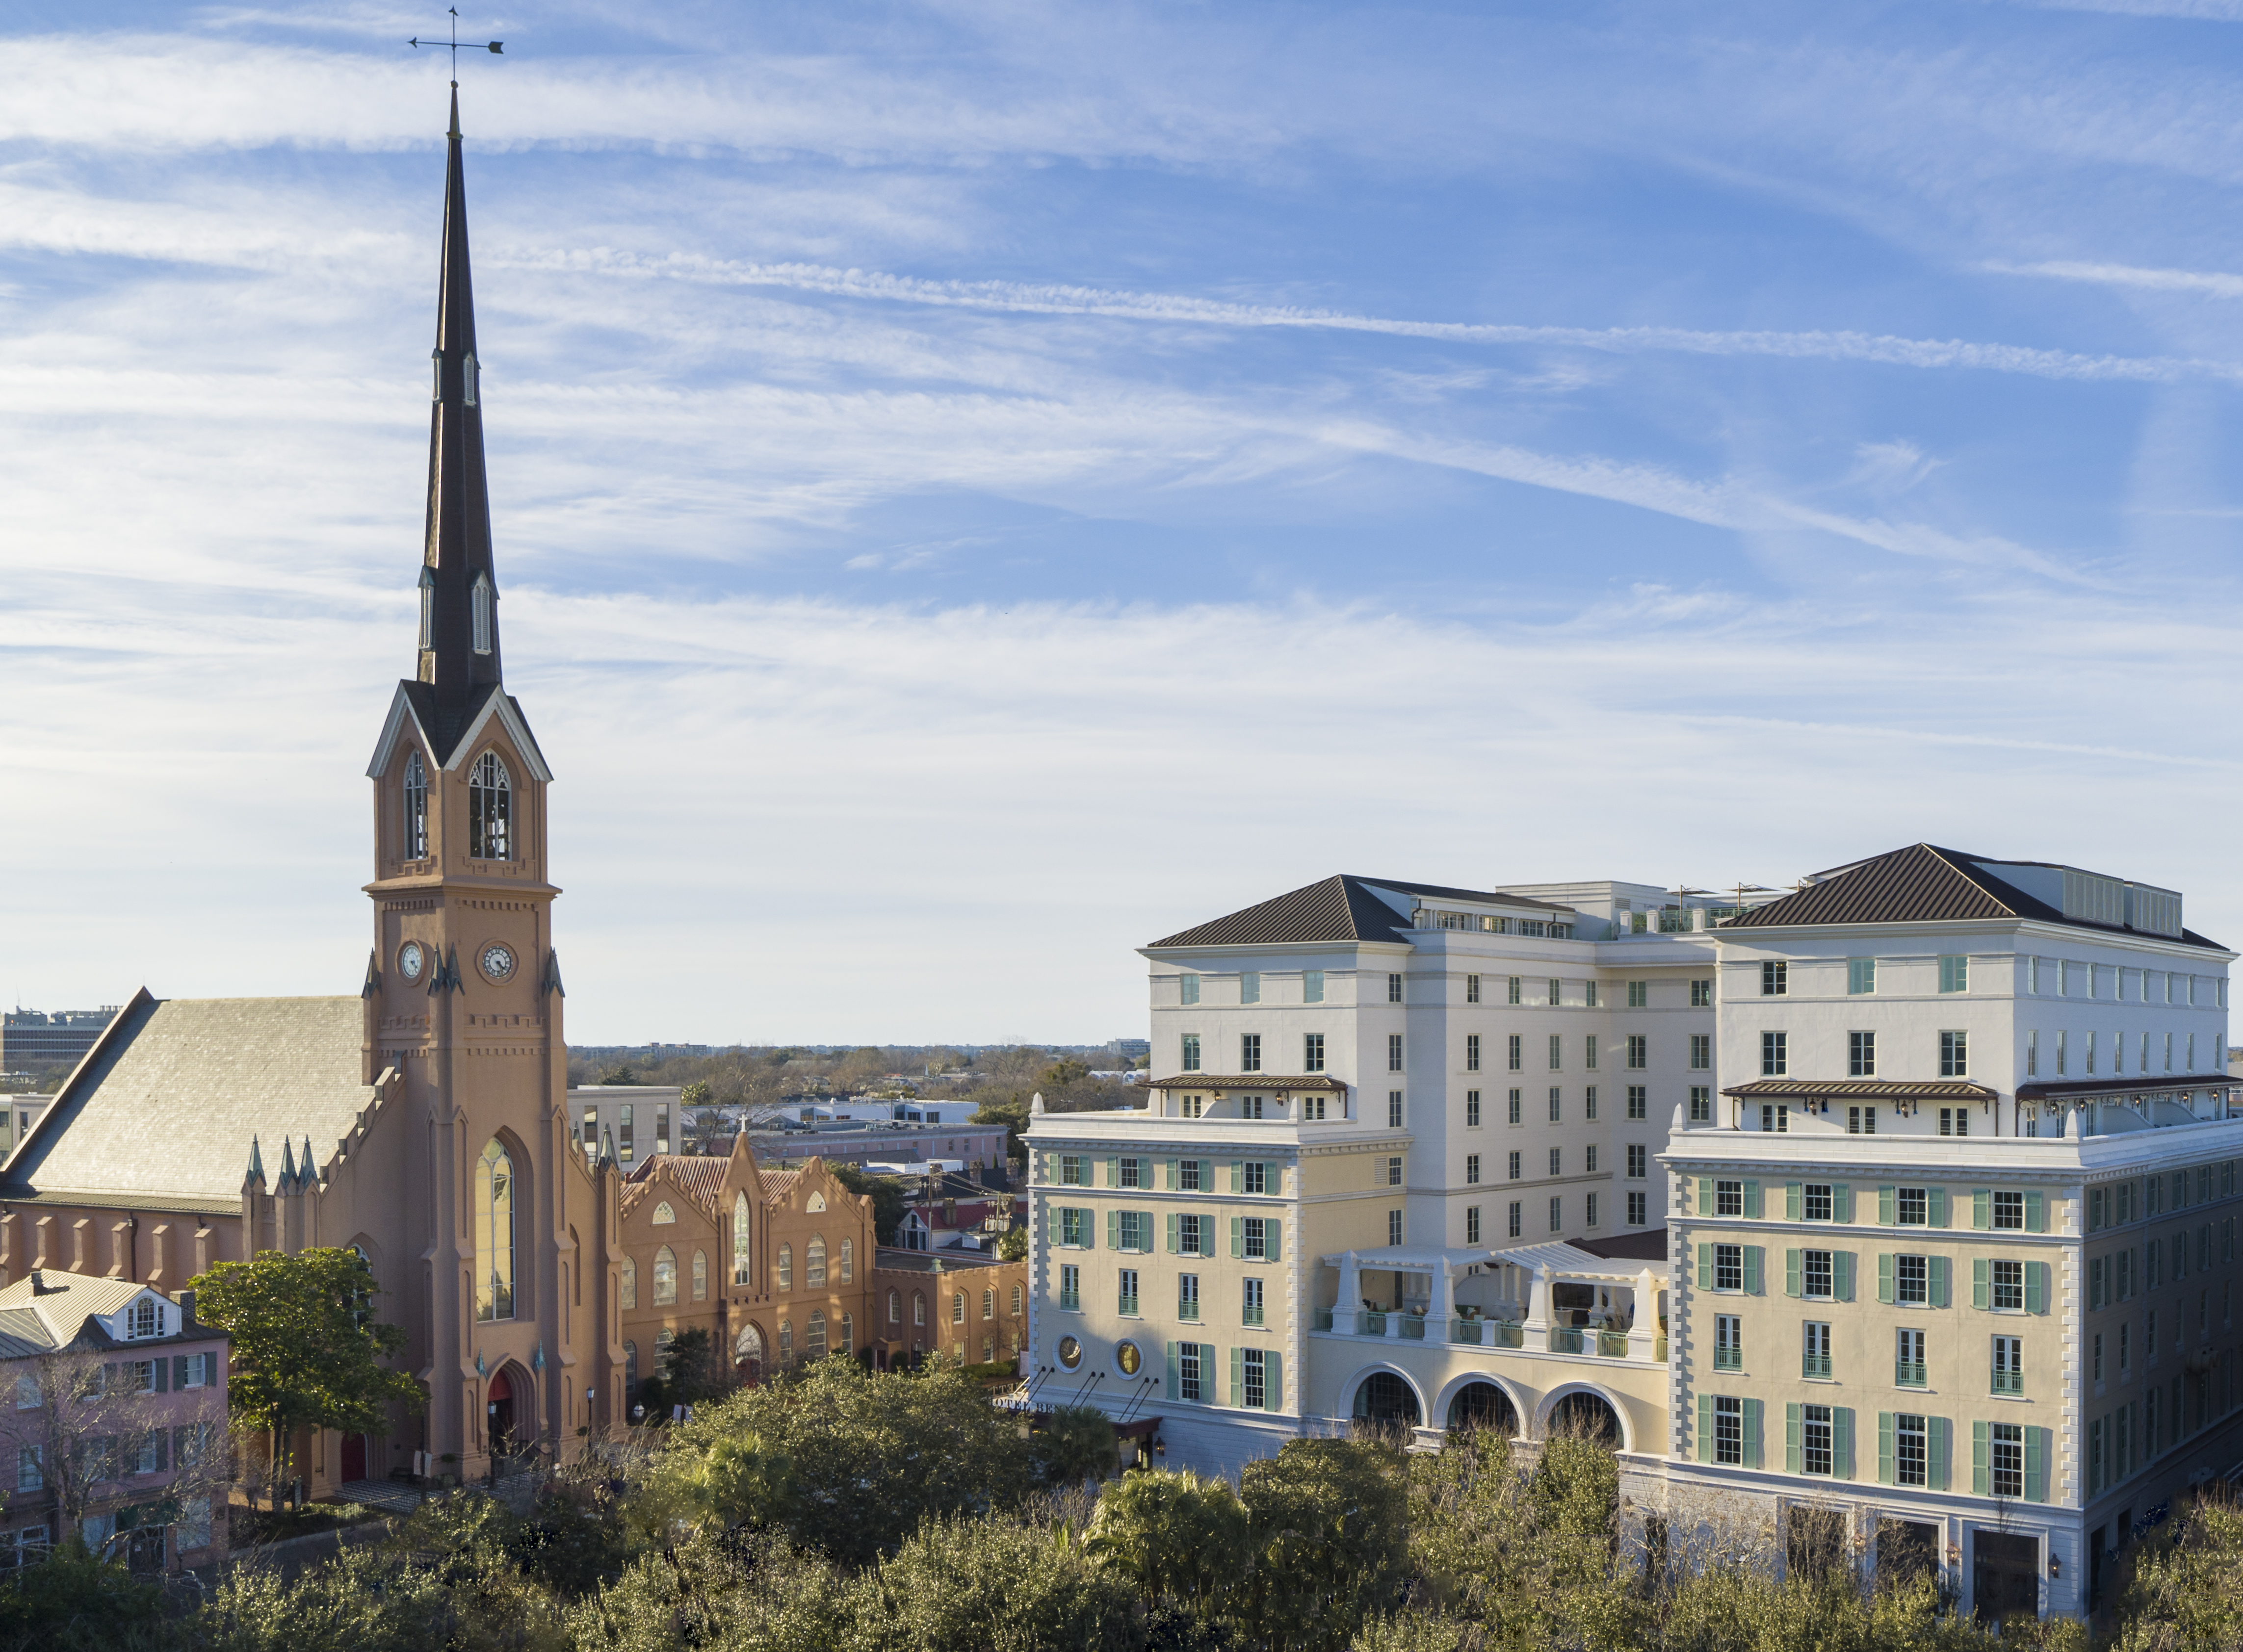 The South's new luxury Hotel Bennett, inspired by native Charlestonians and European classic design, is located on fashionable King Street.